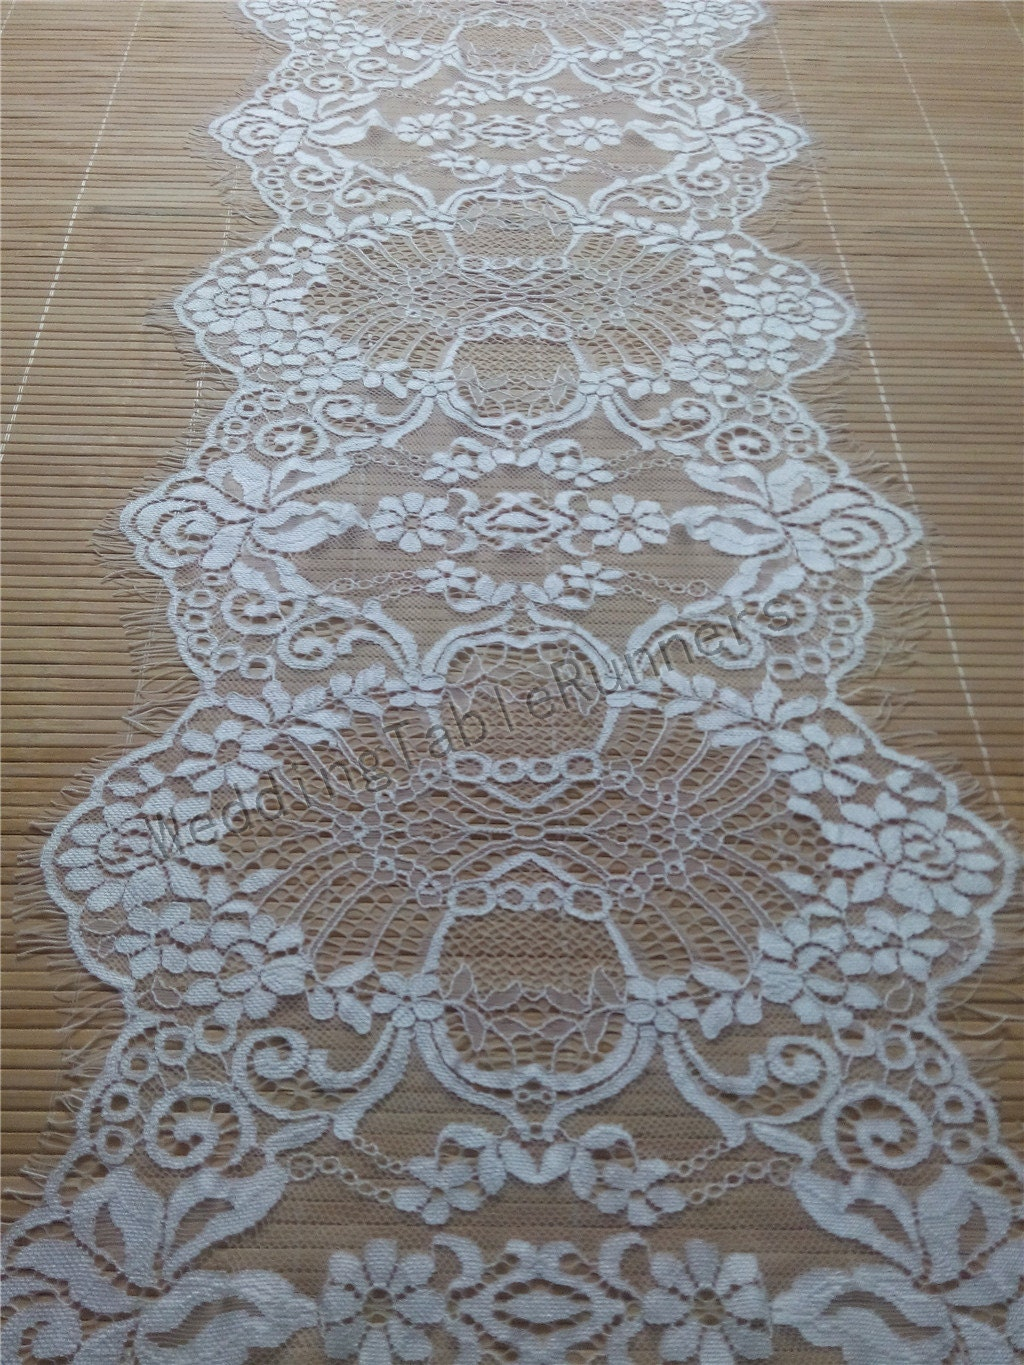 20ft Ivory Lace Table Runner 11 Wedding Runners Wedding